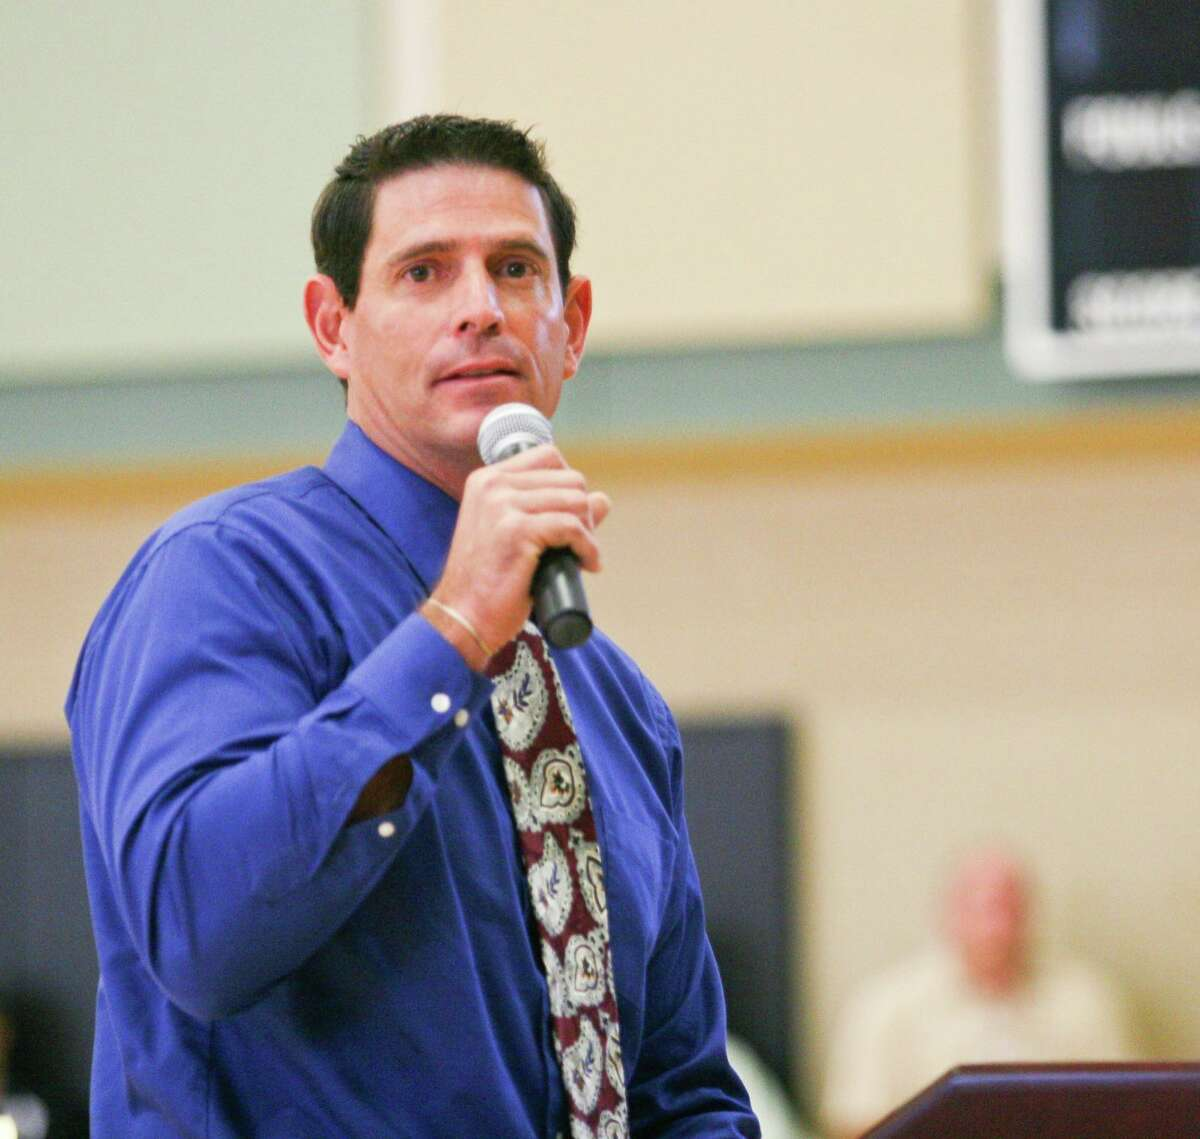 Pearland ISD Athletic Director Ben Pardo says all his coaches are coping through the weather-related challenges this week.